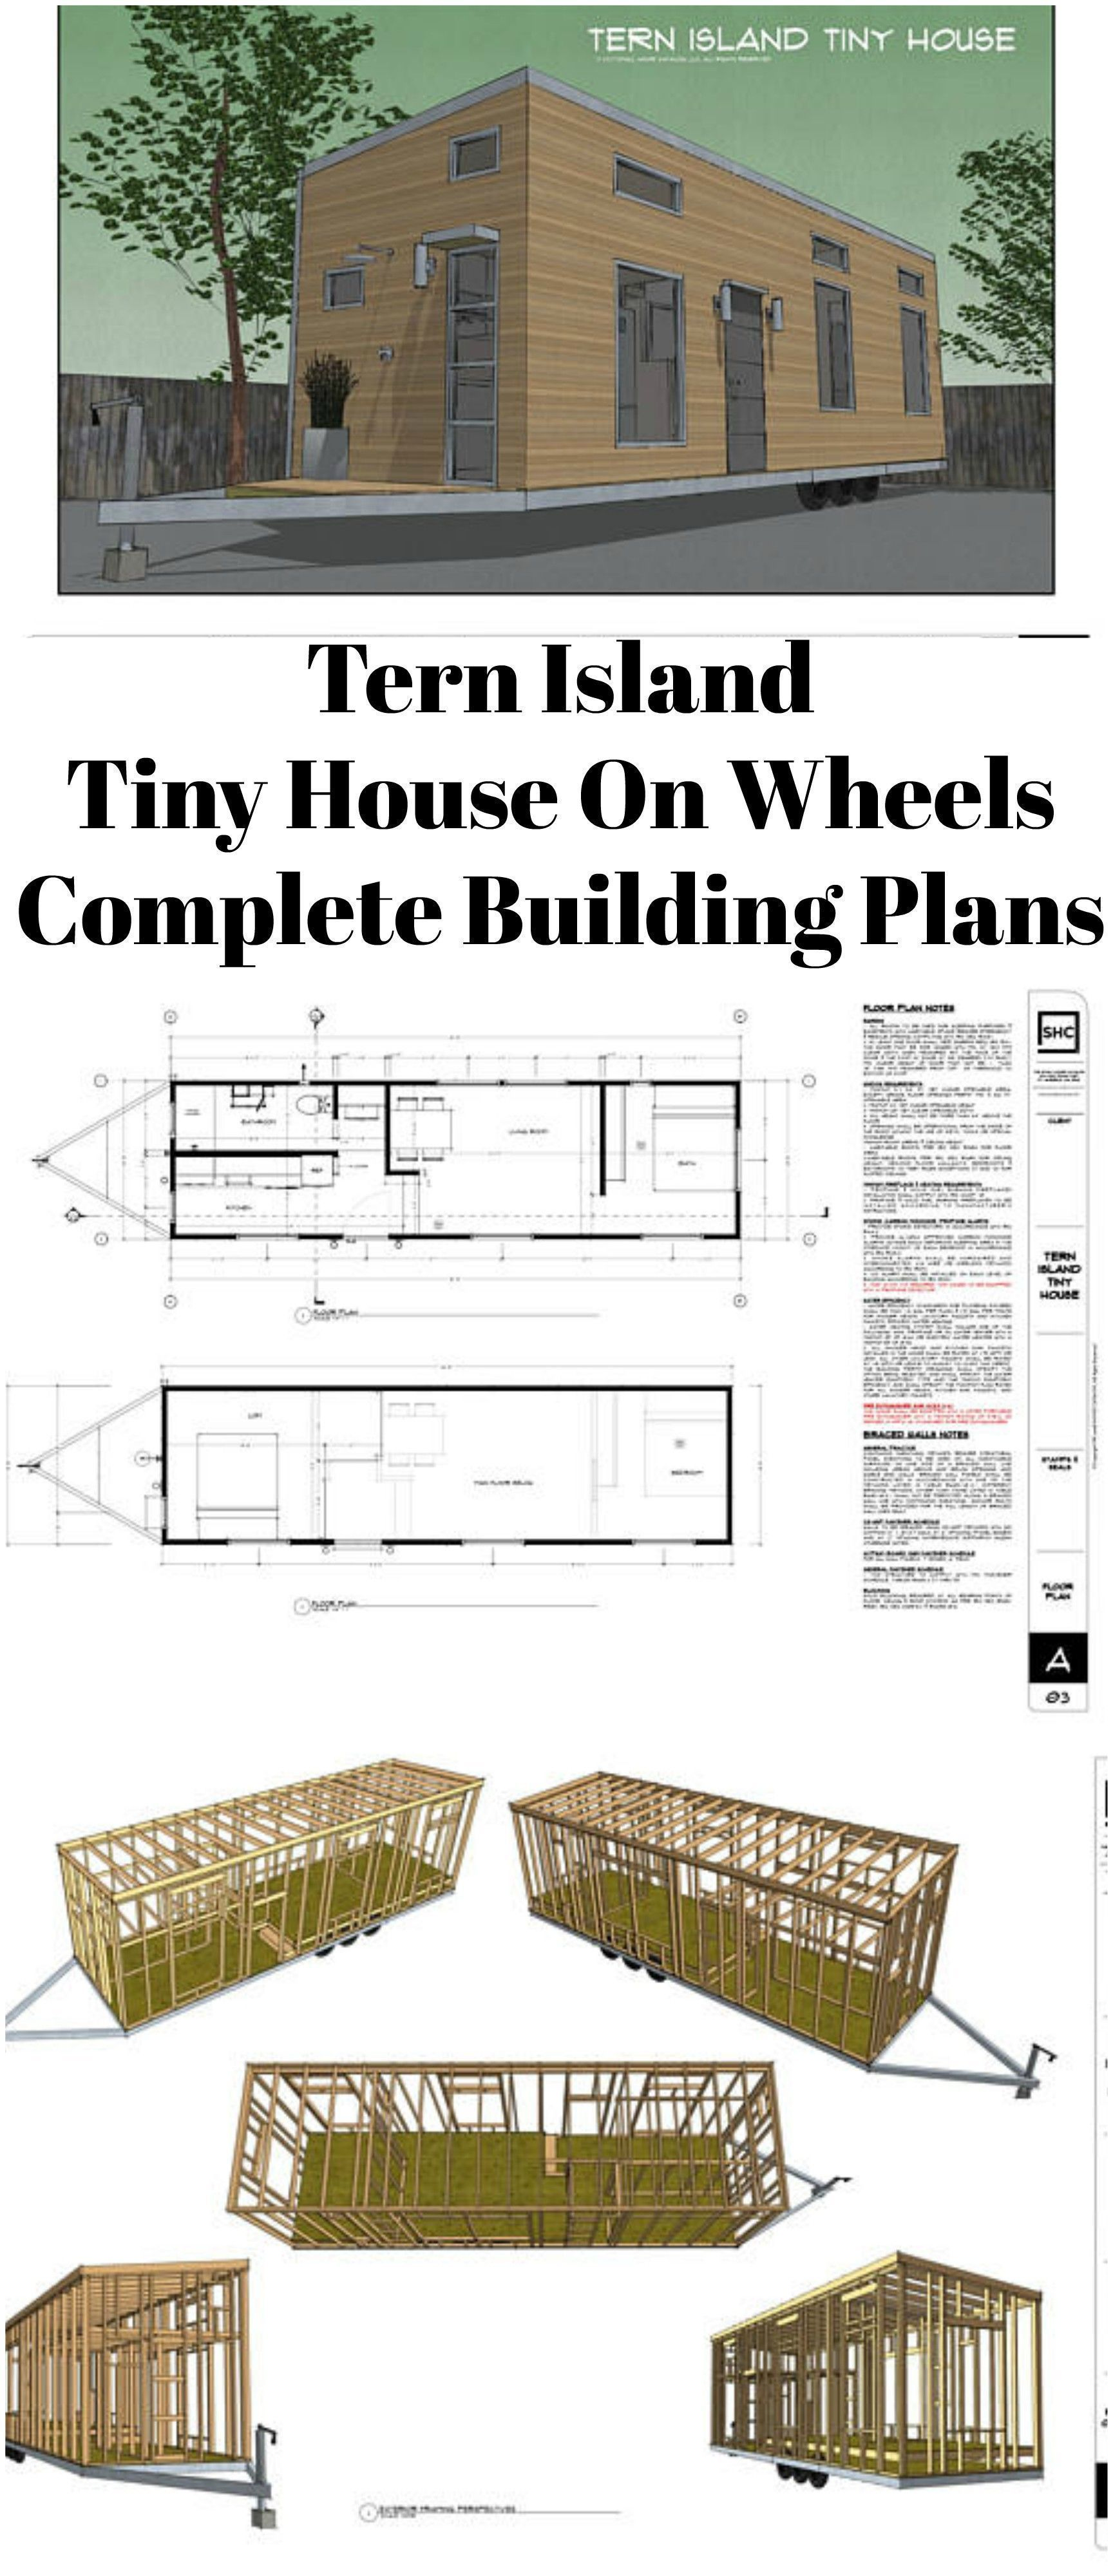 Tinyhouse tinyhomes tern island tiny house on wheels complete tinyhouse tinyhomes tern island tiny house on wheels complete building plans malvernweather Images